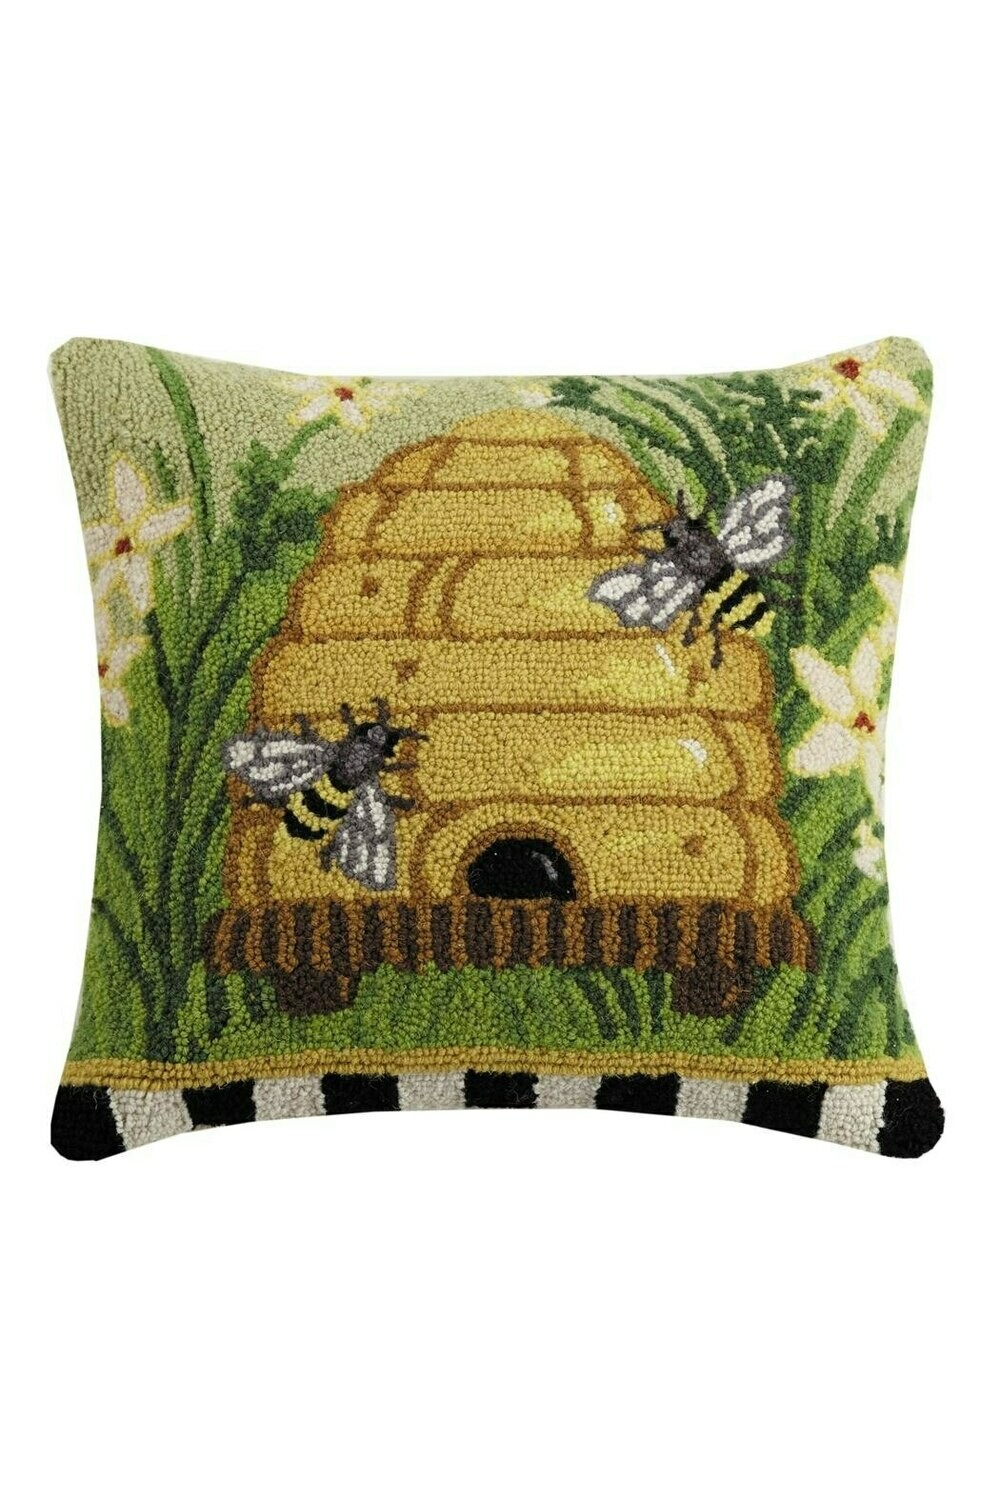 Beehive spring pillow